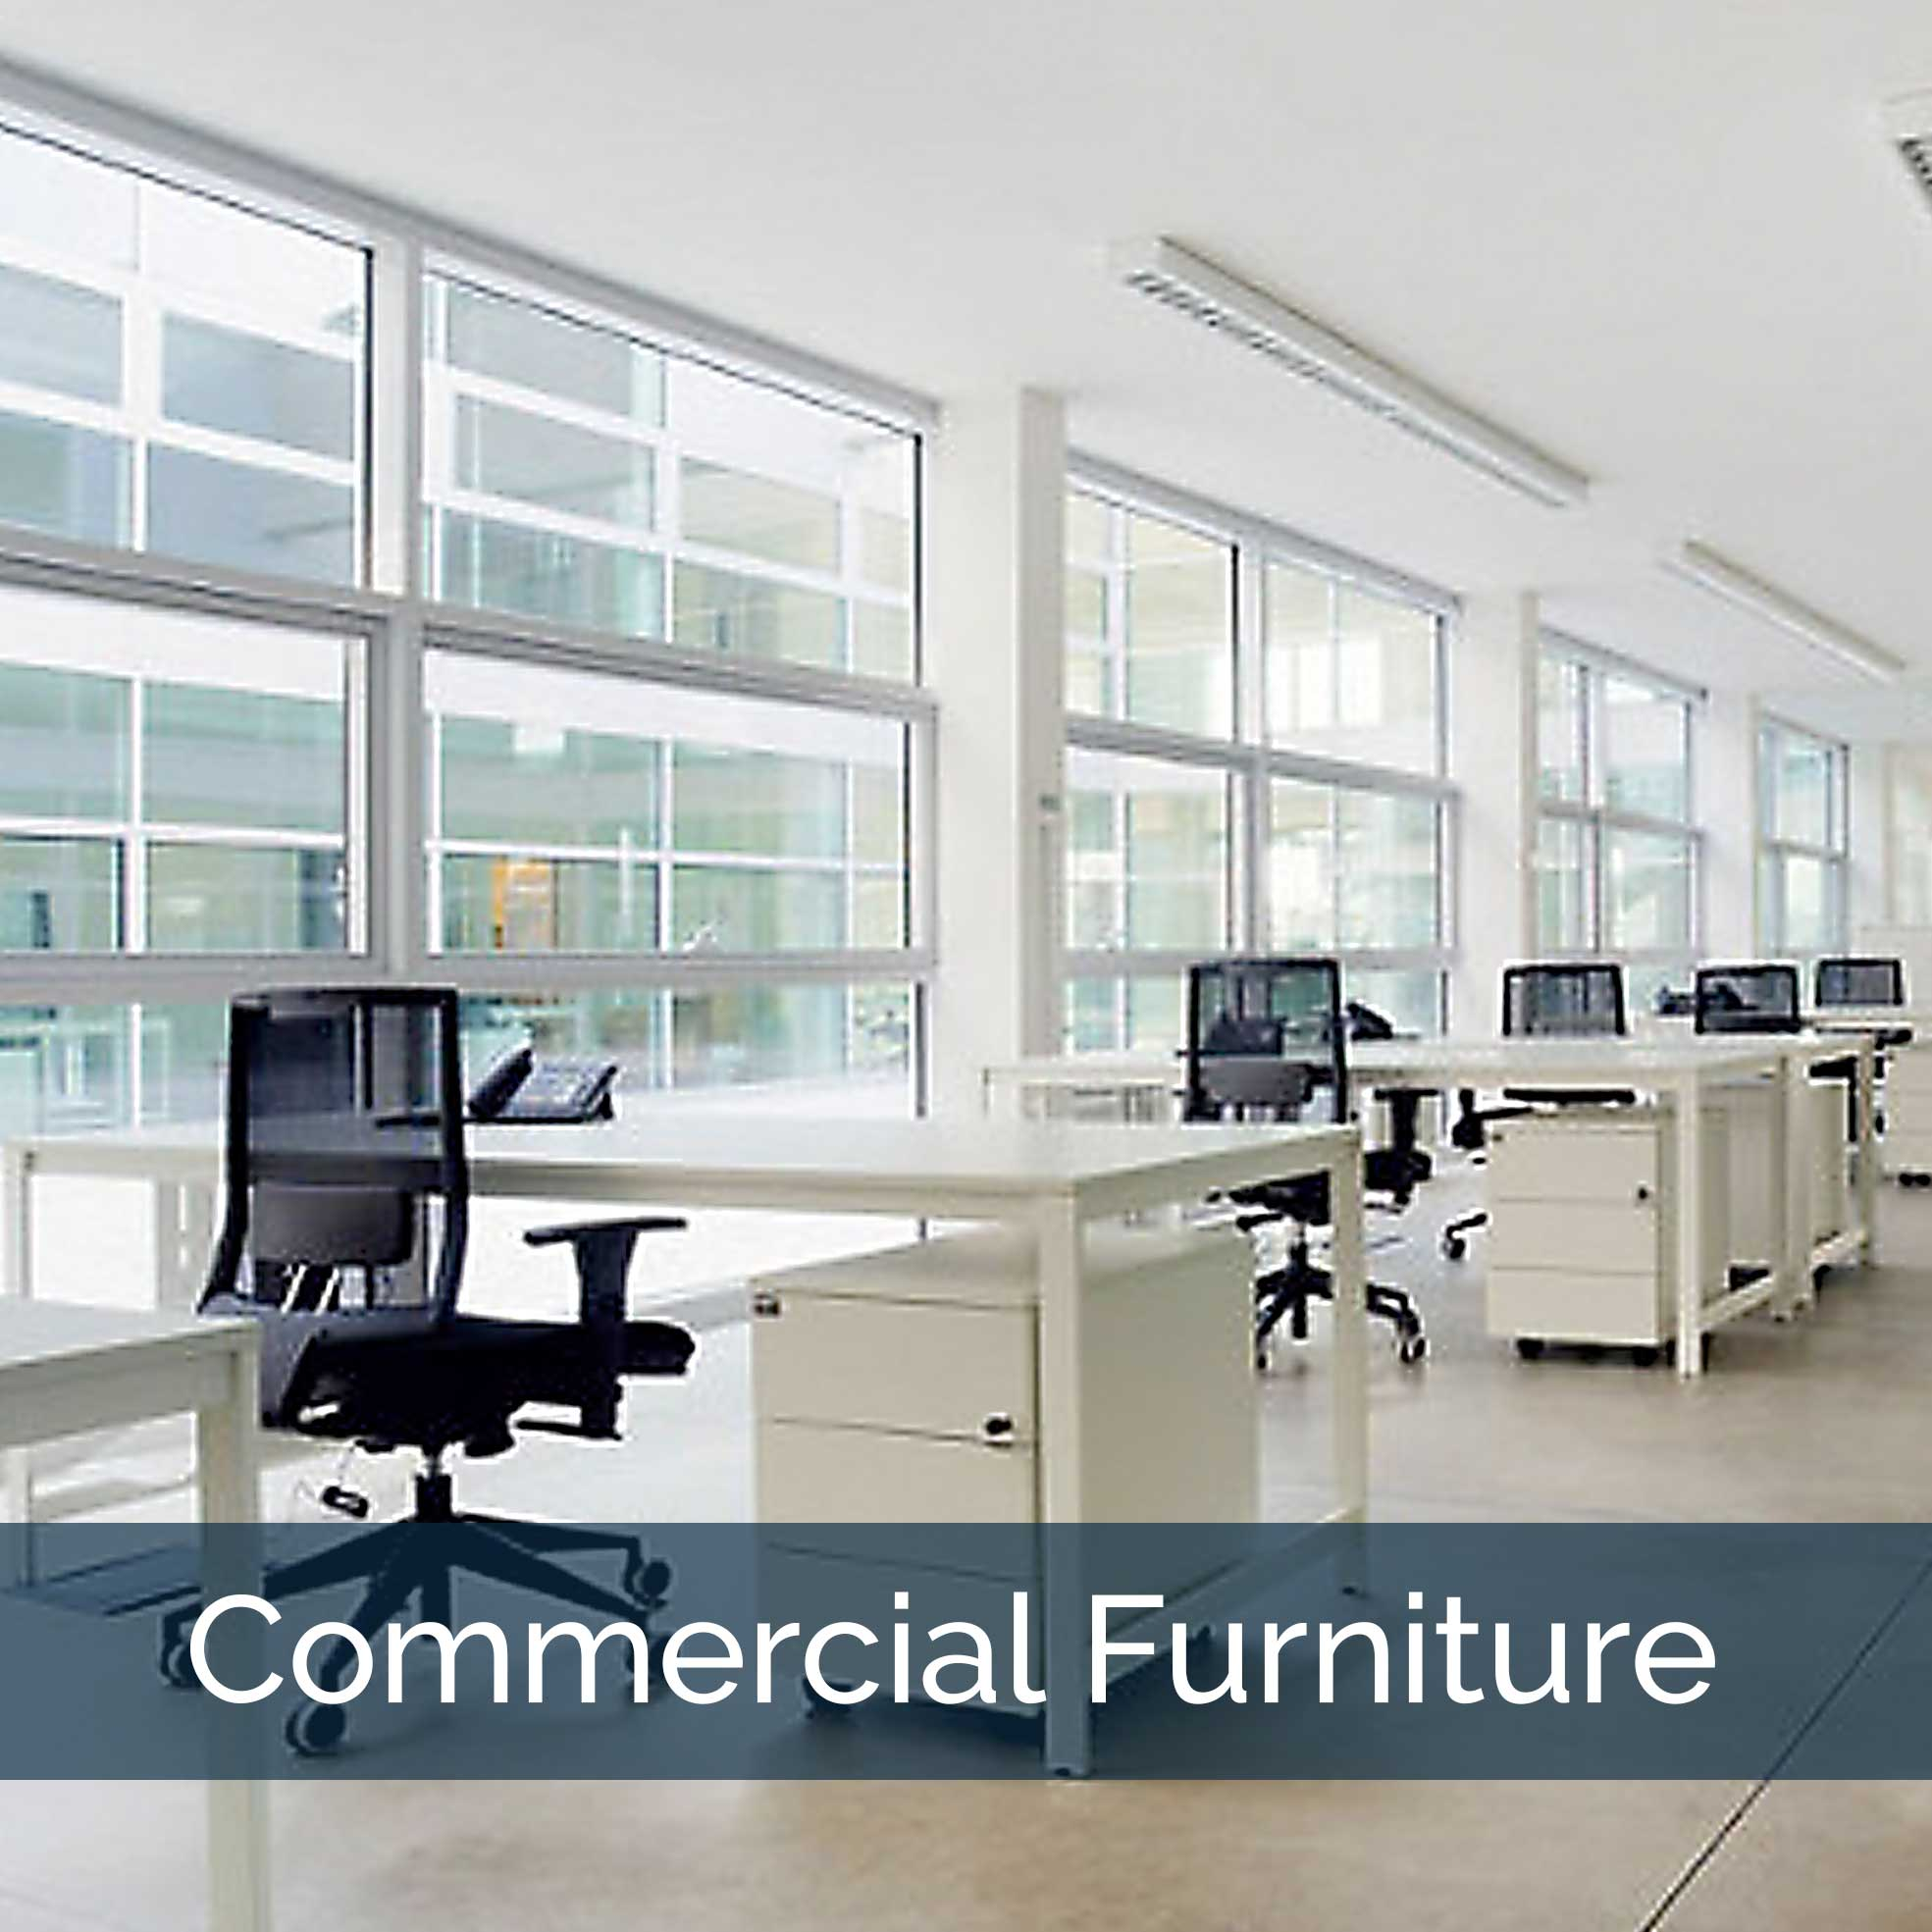 allied workspace commercial furniture, storage